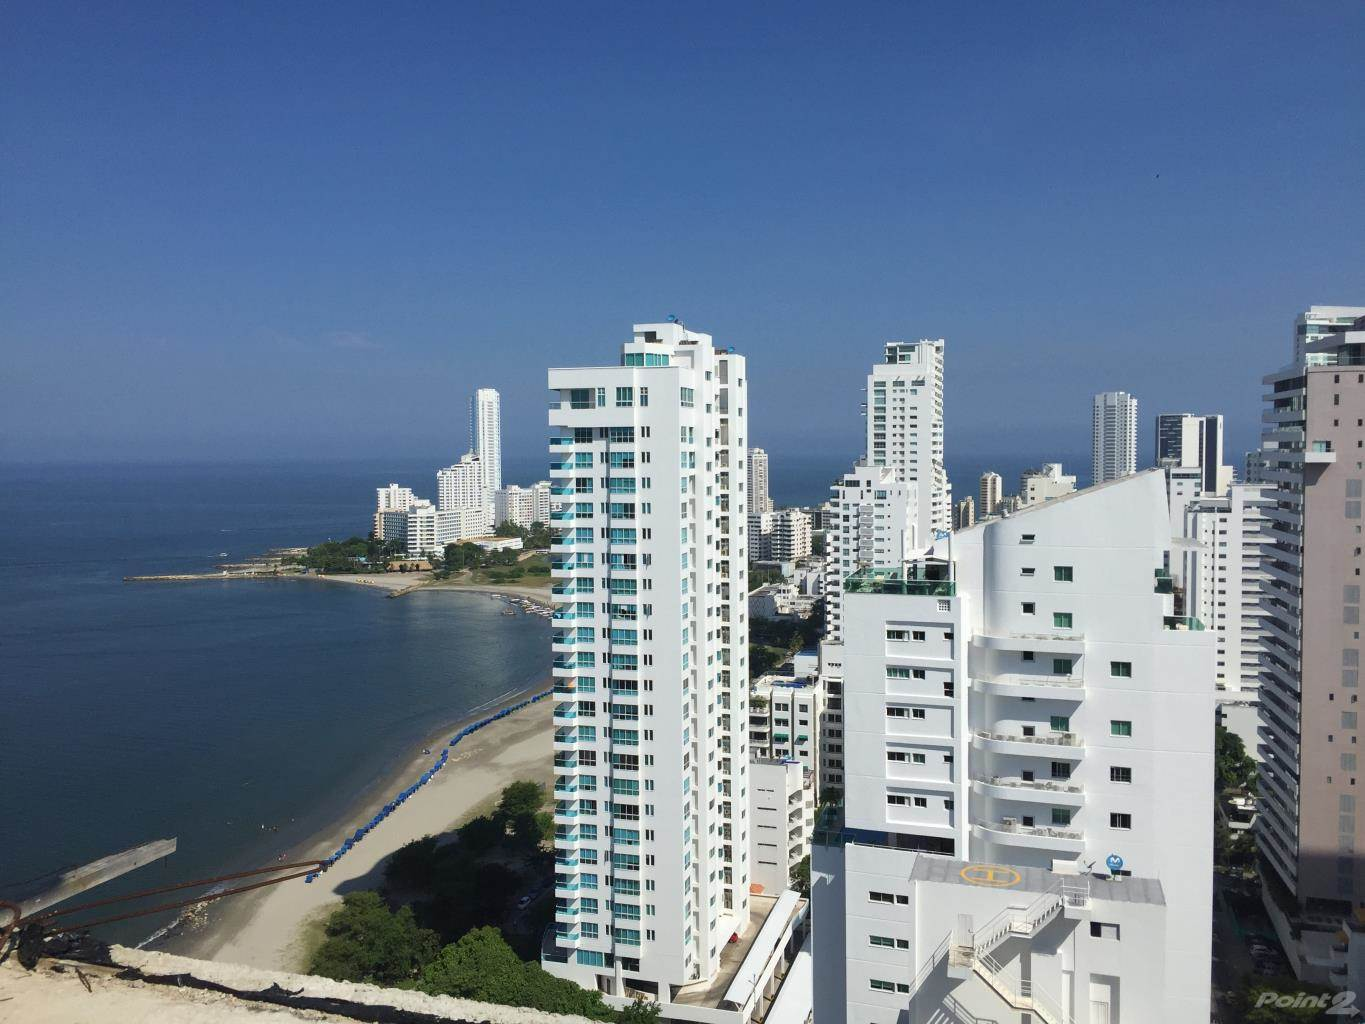 Residential For Sale in En Cartagena venta de apartamentos con vista al mar, Cartagena De Indias, Bolivar ,130001  , Colombia